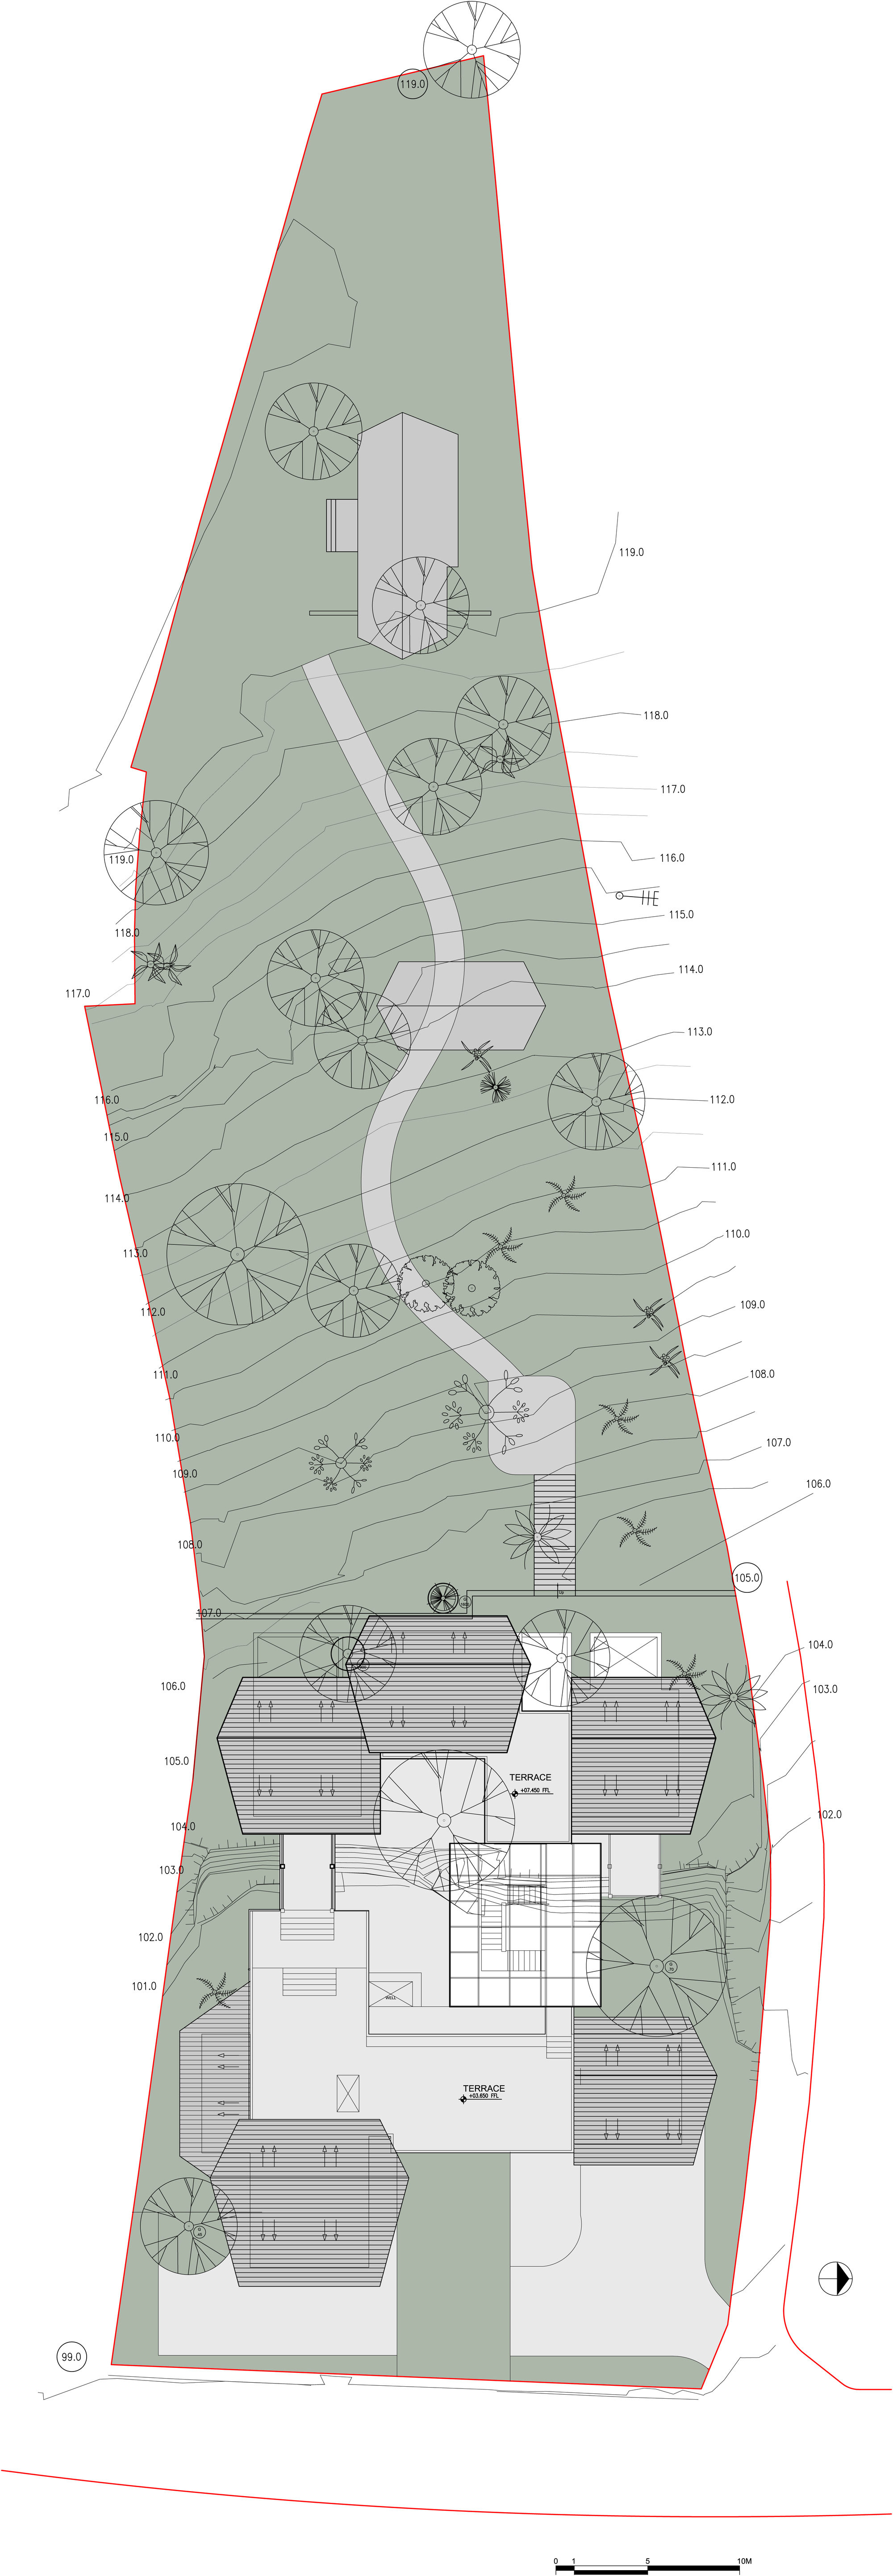 Maison D Architecte Lloyd Wright likewise In And Out Of Three Houses By Office Geers Van Severen likewise Pk Arkitektar Modern Icelandic Turf House further Interlock Driveway moreover 9308. on patio house plan